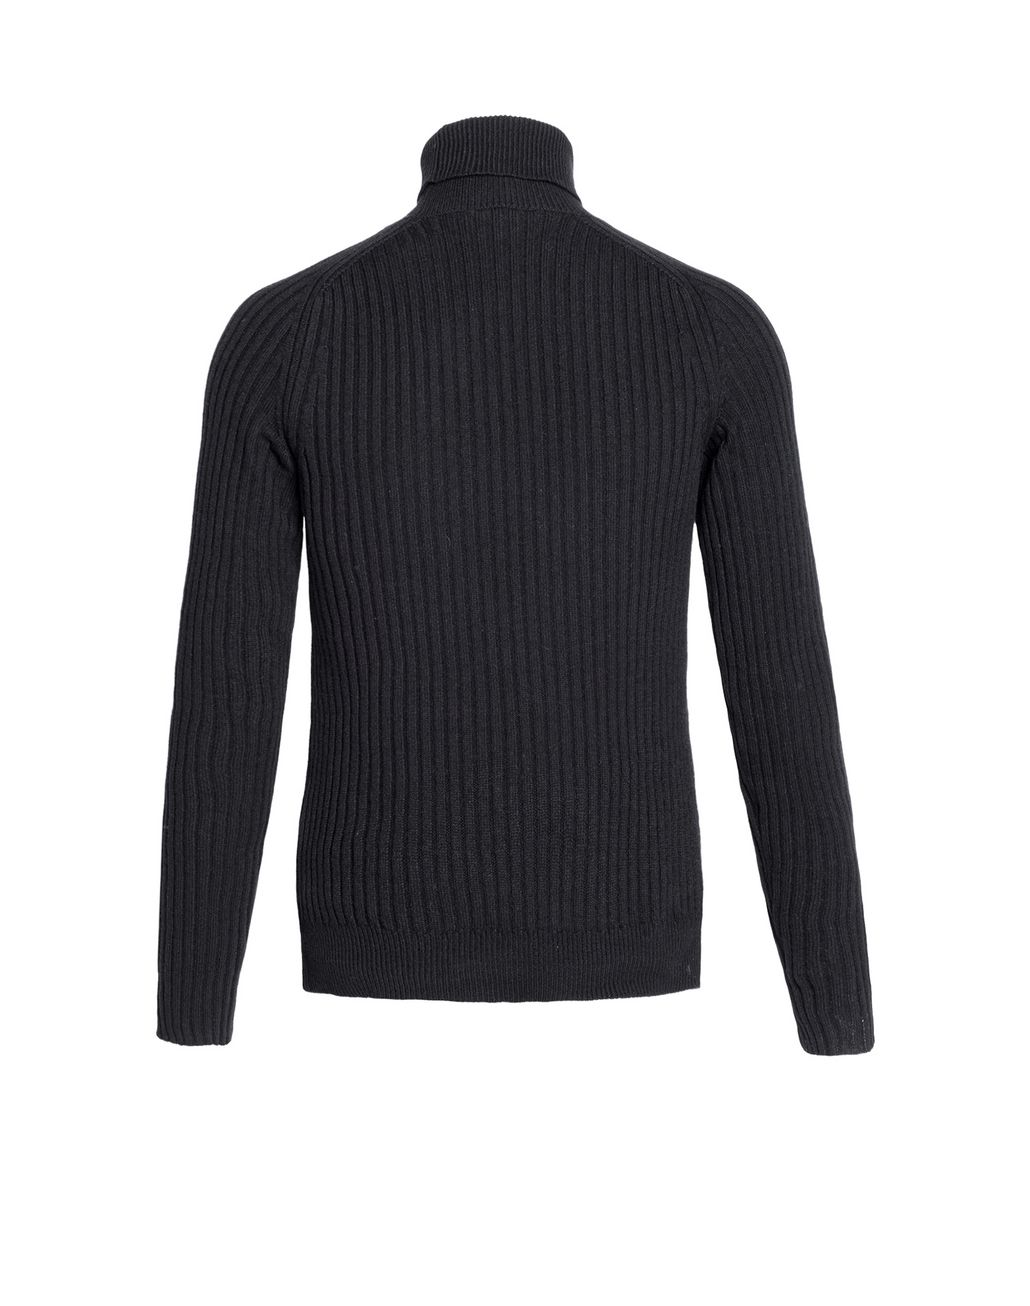 BRIONI Black Cashmere Ribbed Turtleneck Sweater Knitwear [*** pickupInStoreShippingNotGuaranteed_info ***] d